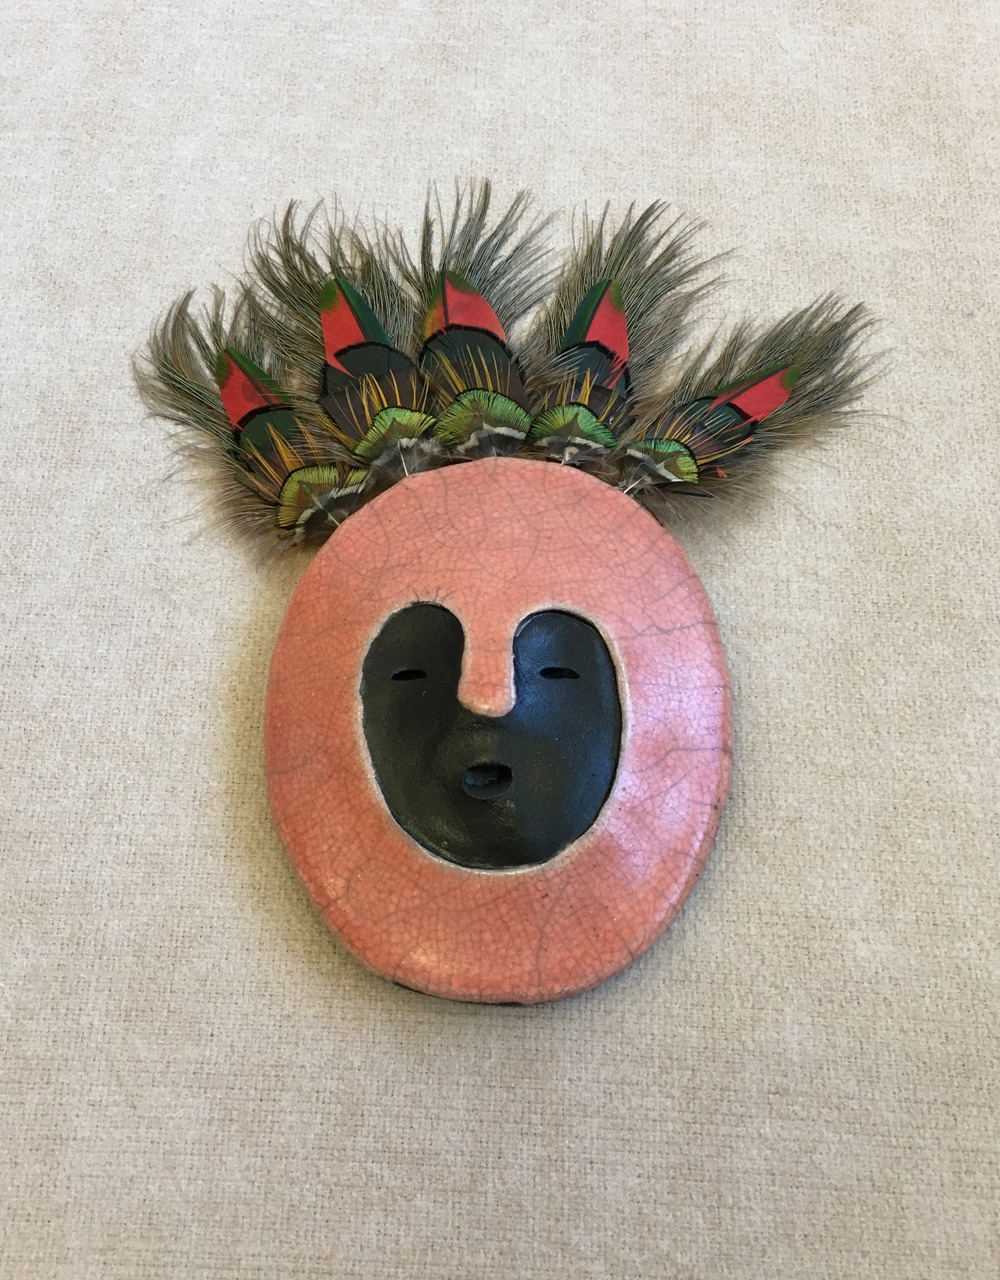 Hawaiian guardian wall hanging mask. Kahu single mask Large by Zeke Israel with feathers. Pink